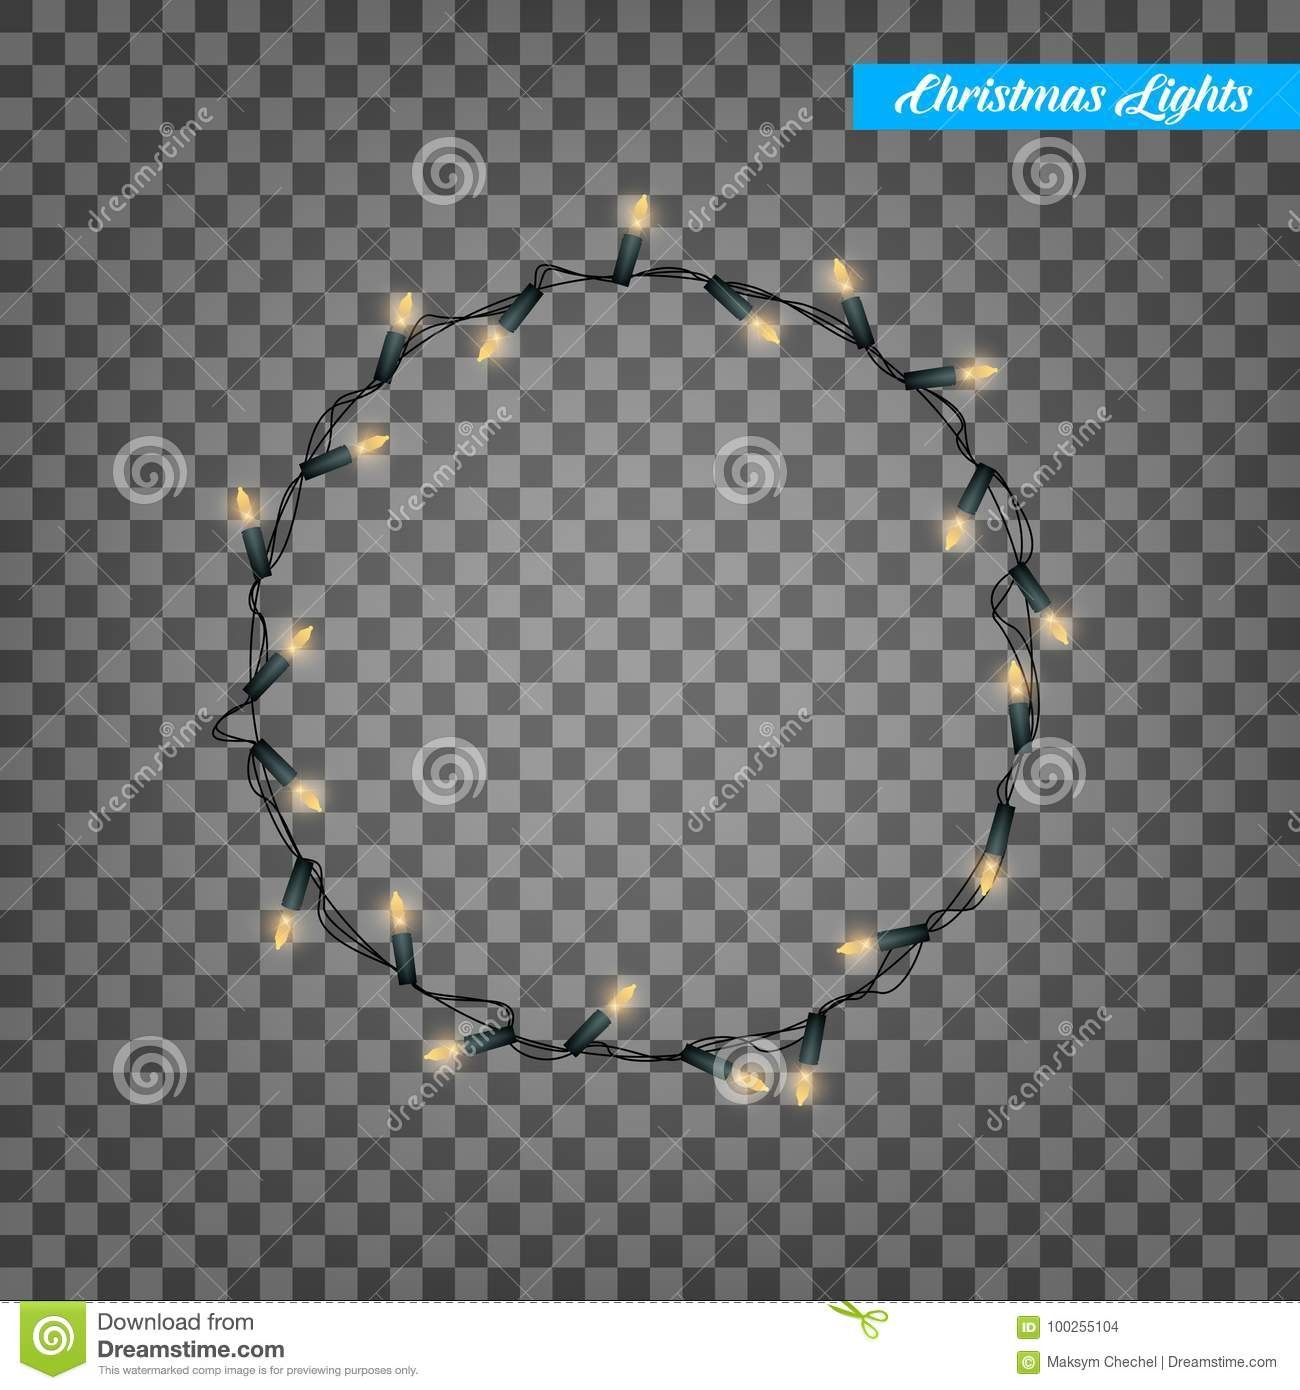 Christmas lights. Realistic string lights design elements. Glowing lights for winter holidays. Shiny garlands for Xmas